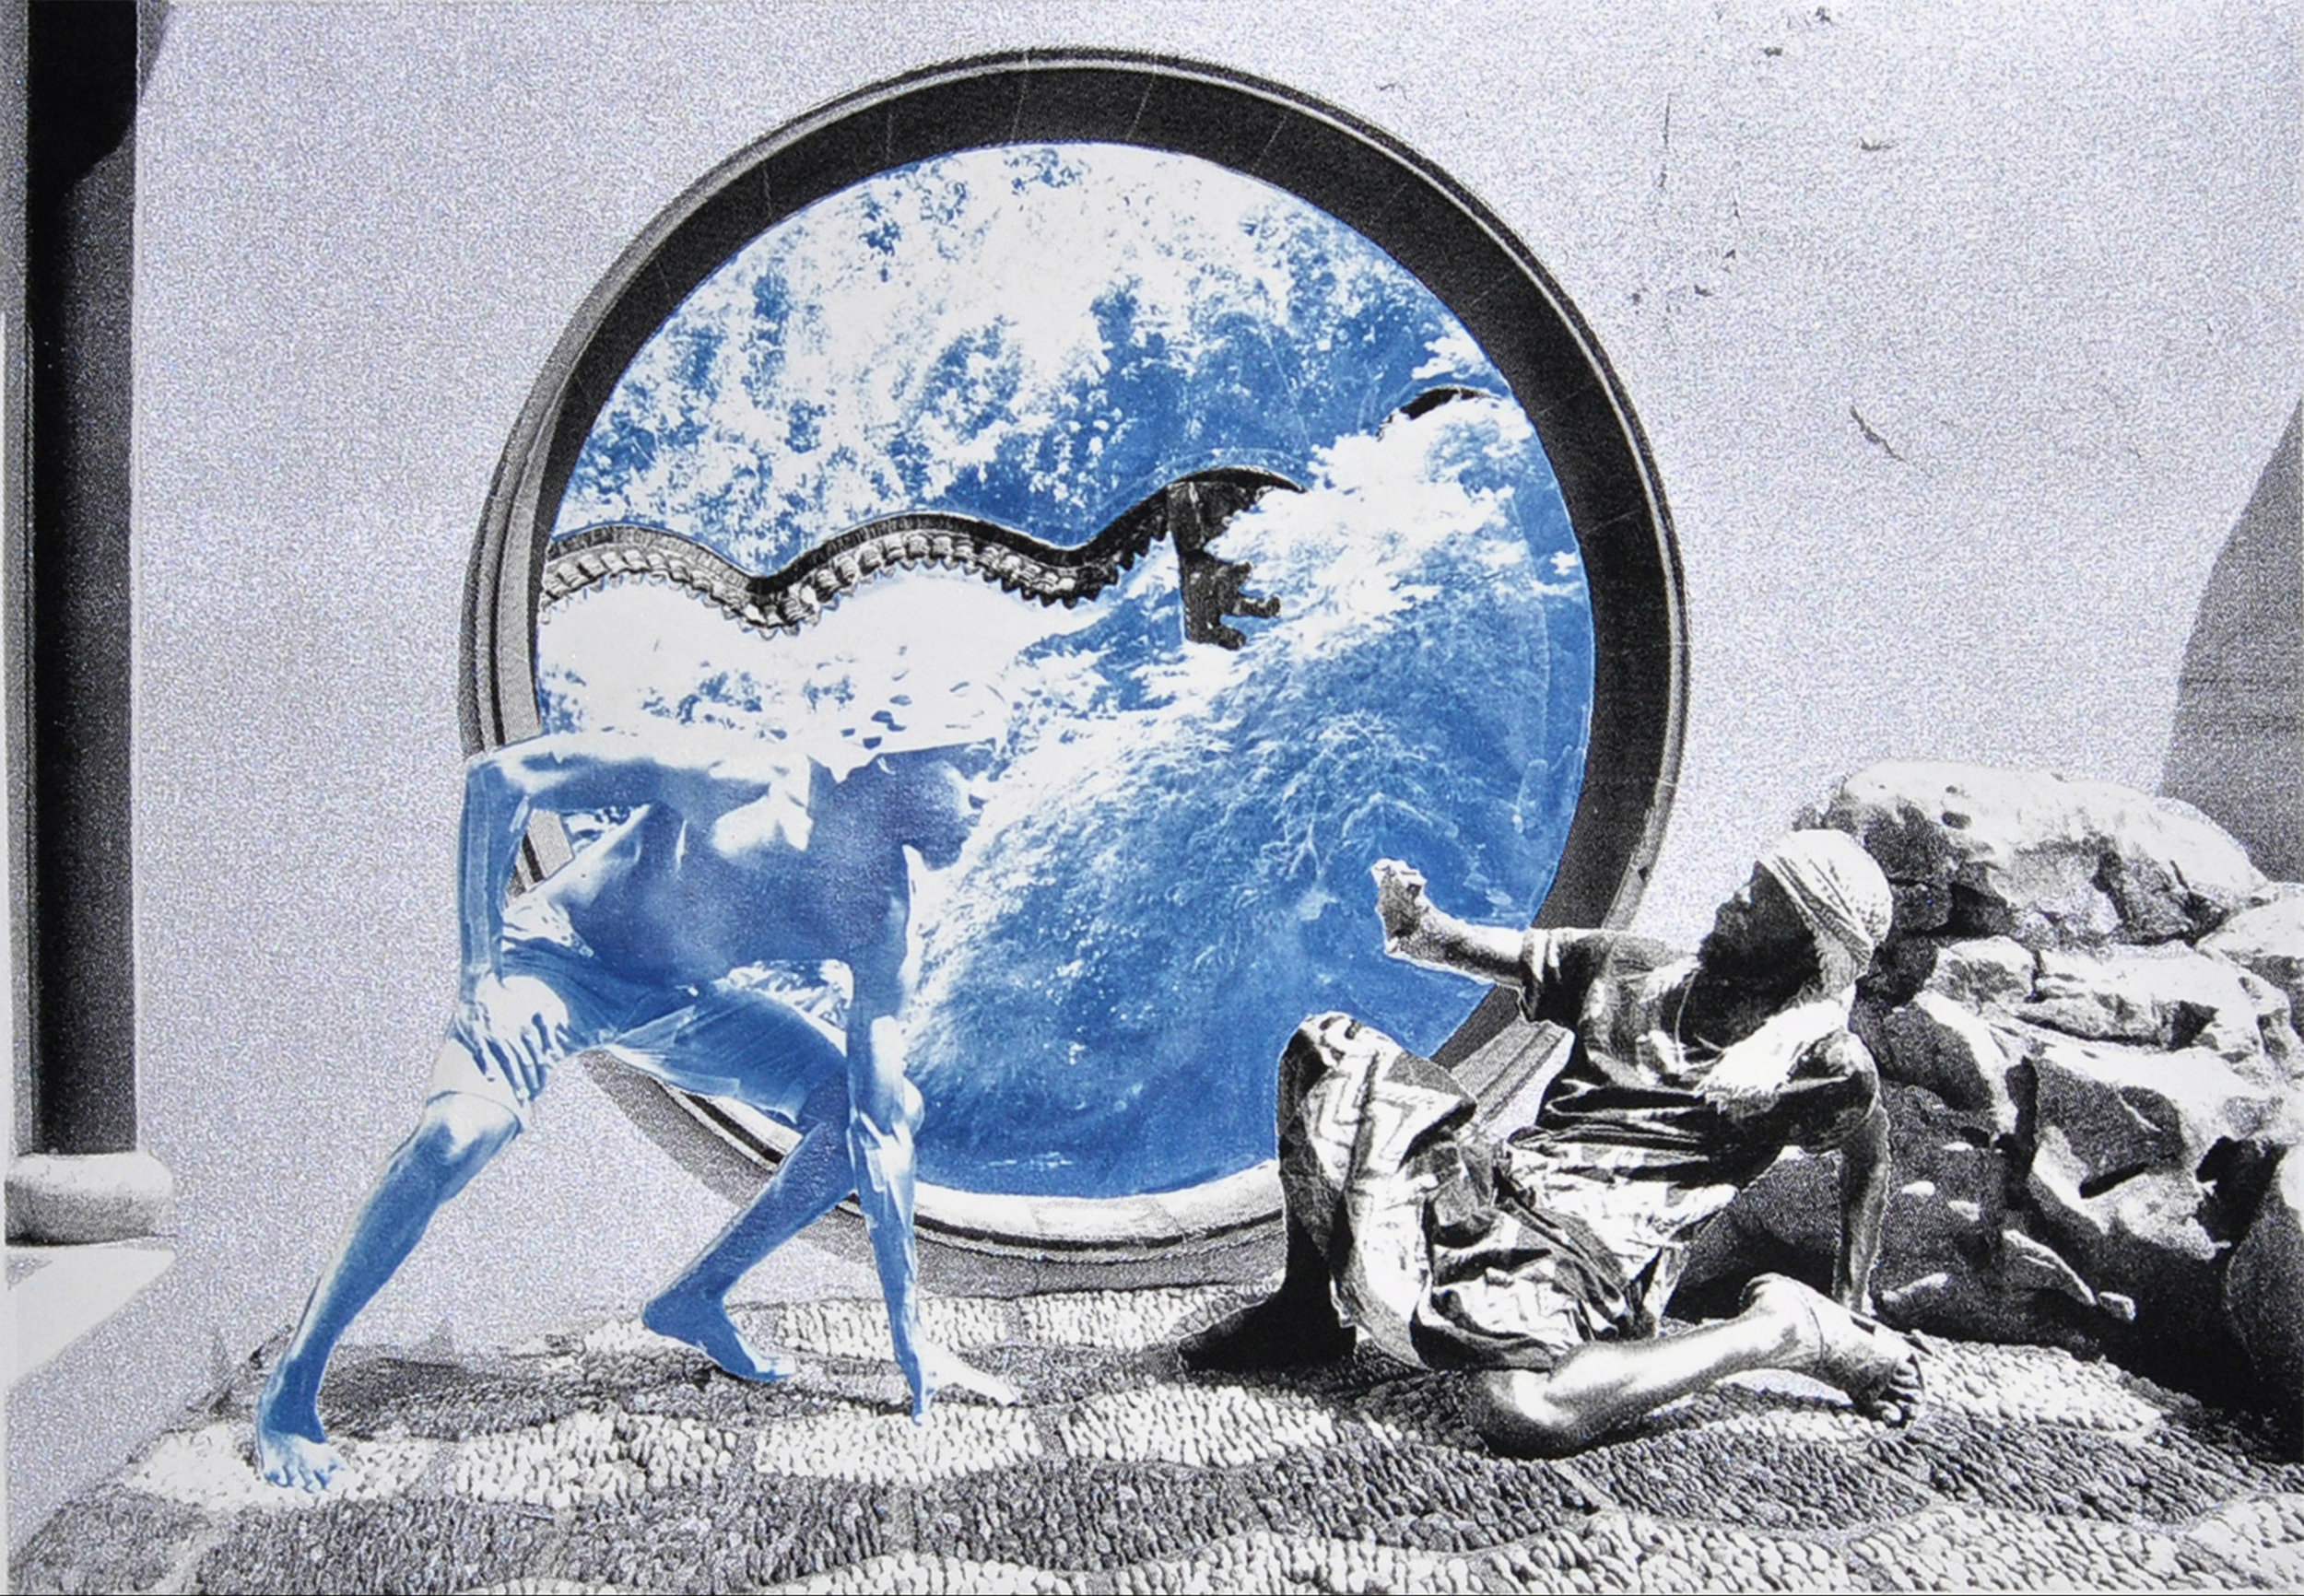 Ivan Forde,  Encounter , 2016  Silkscreen and cyanotype on paper, 12.5 x 18 inches (image size), 22 x 30 inches (paper size), edition of 3   Inquire